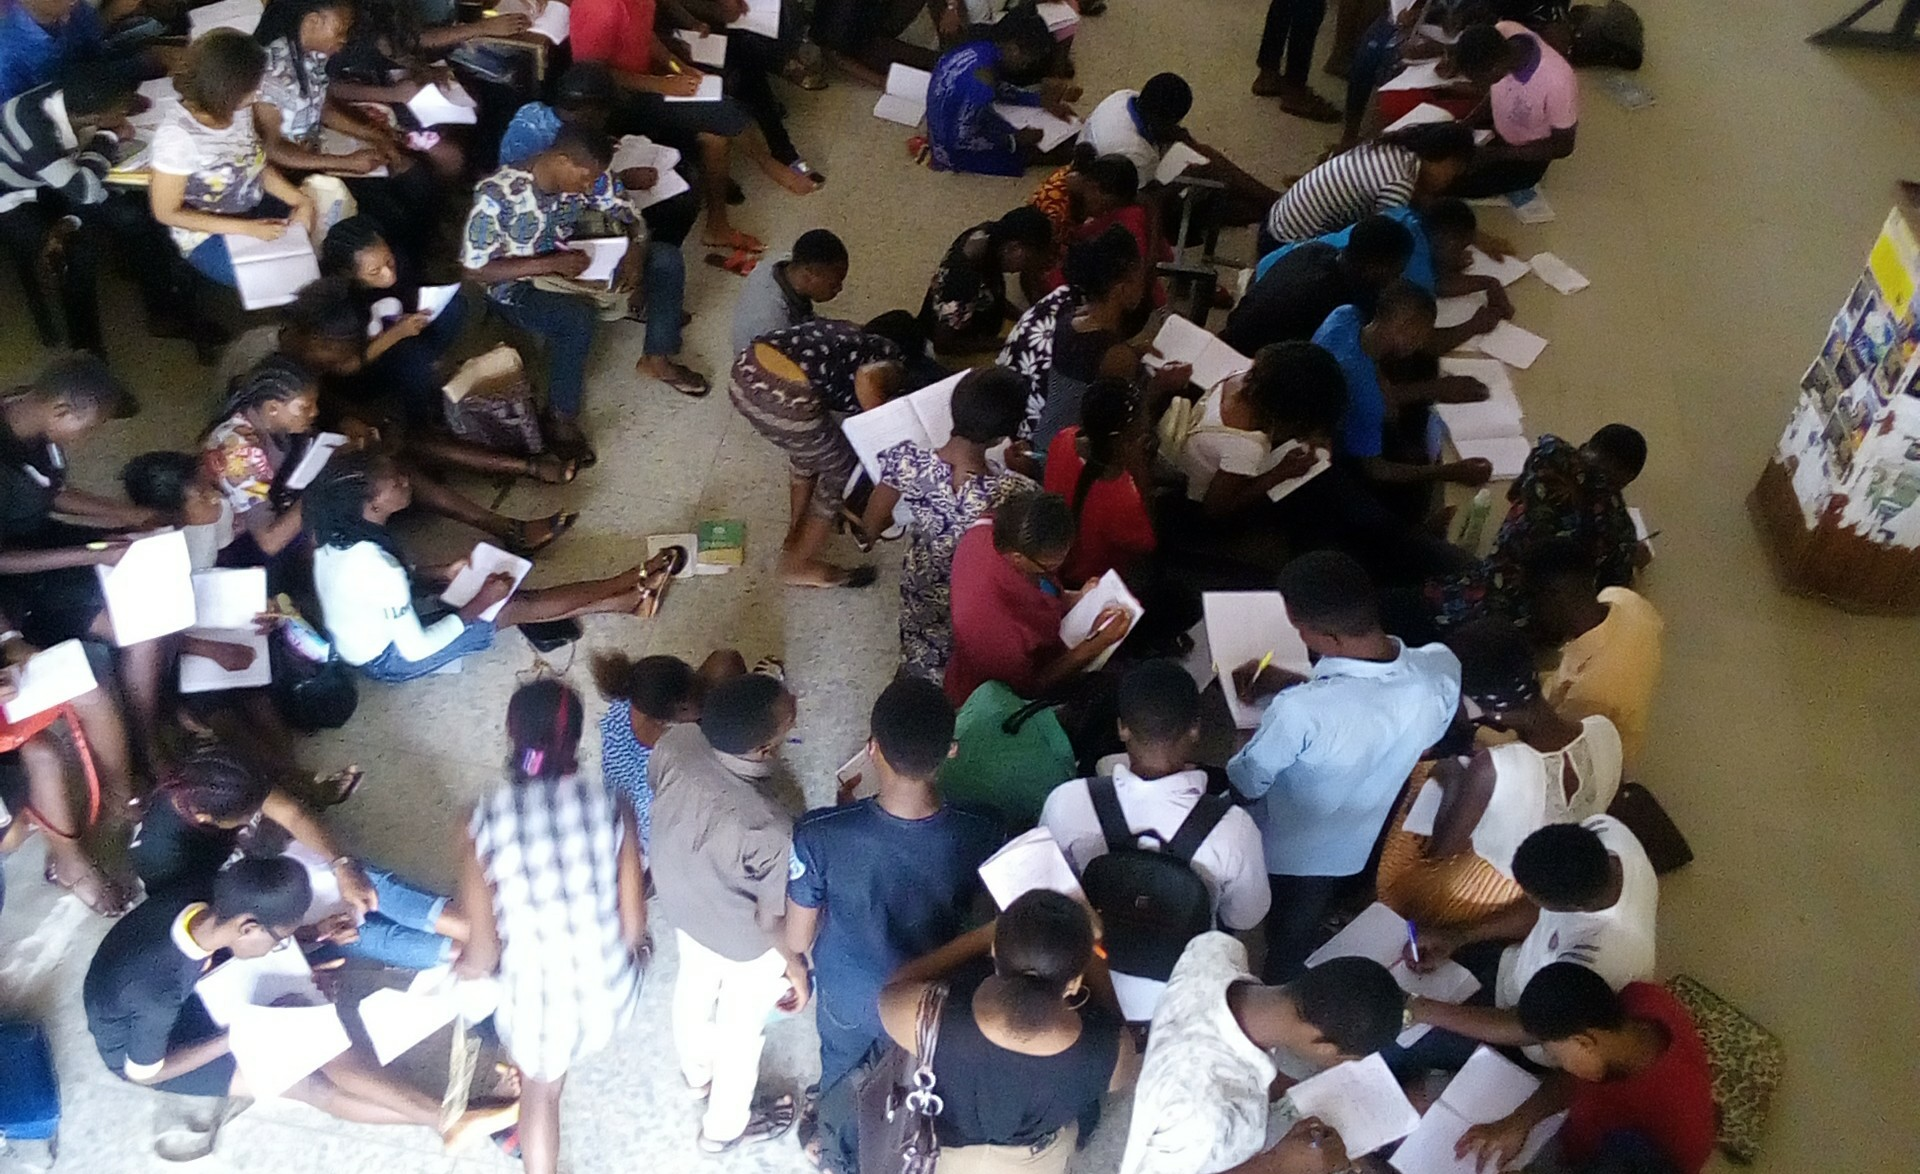 DELSU: 100L Students Receiving Lectures Sitting On Bare Floor